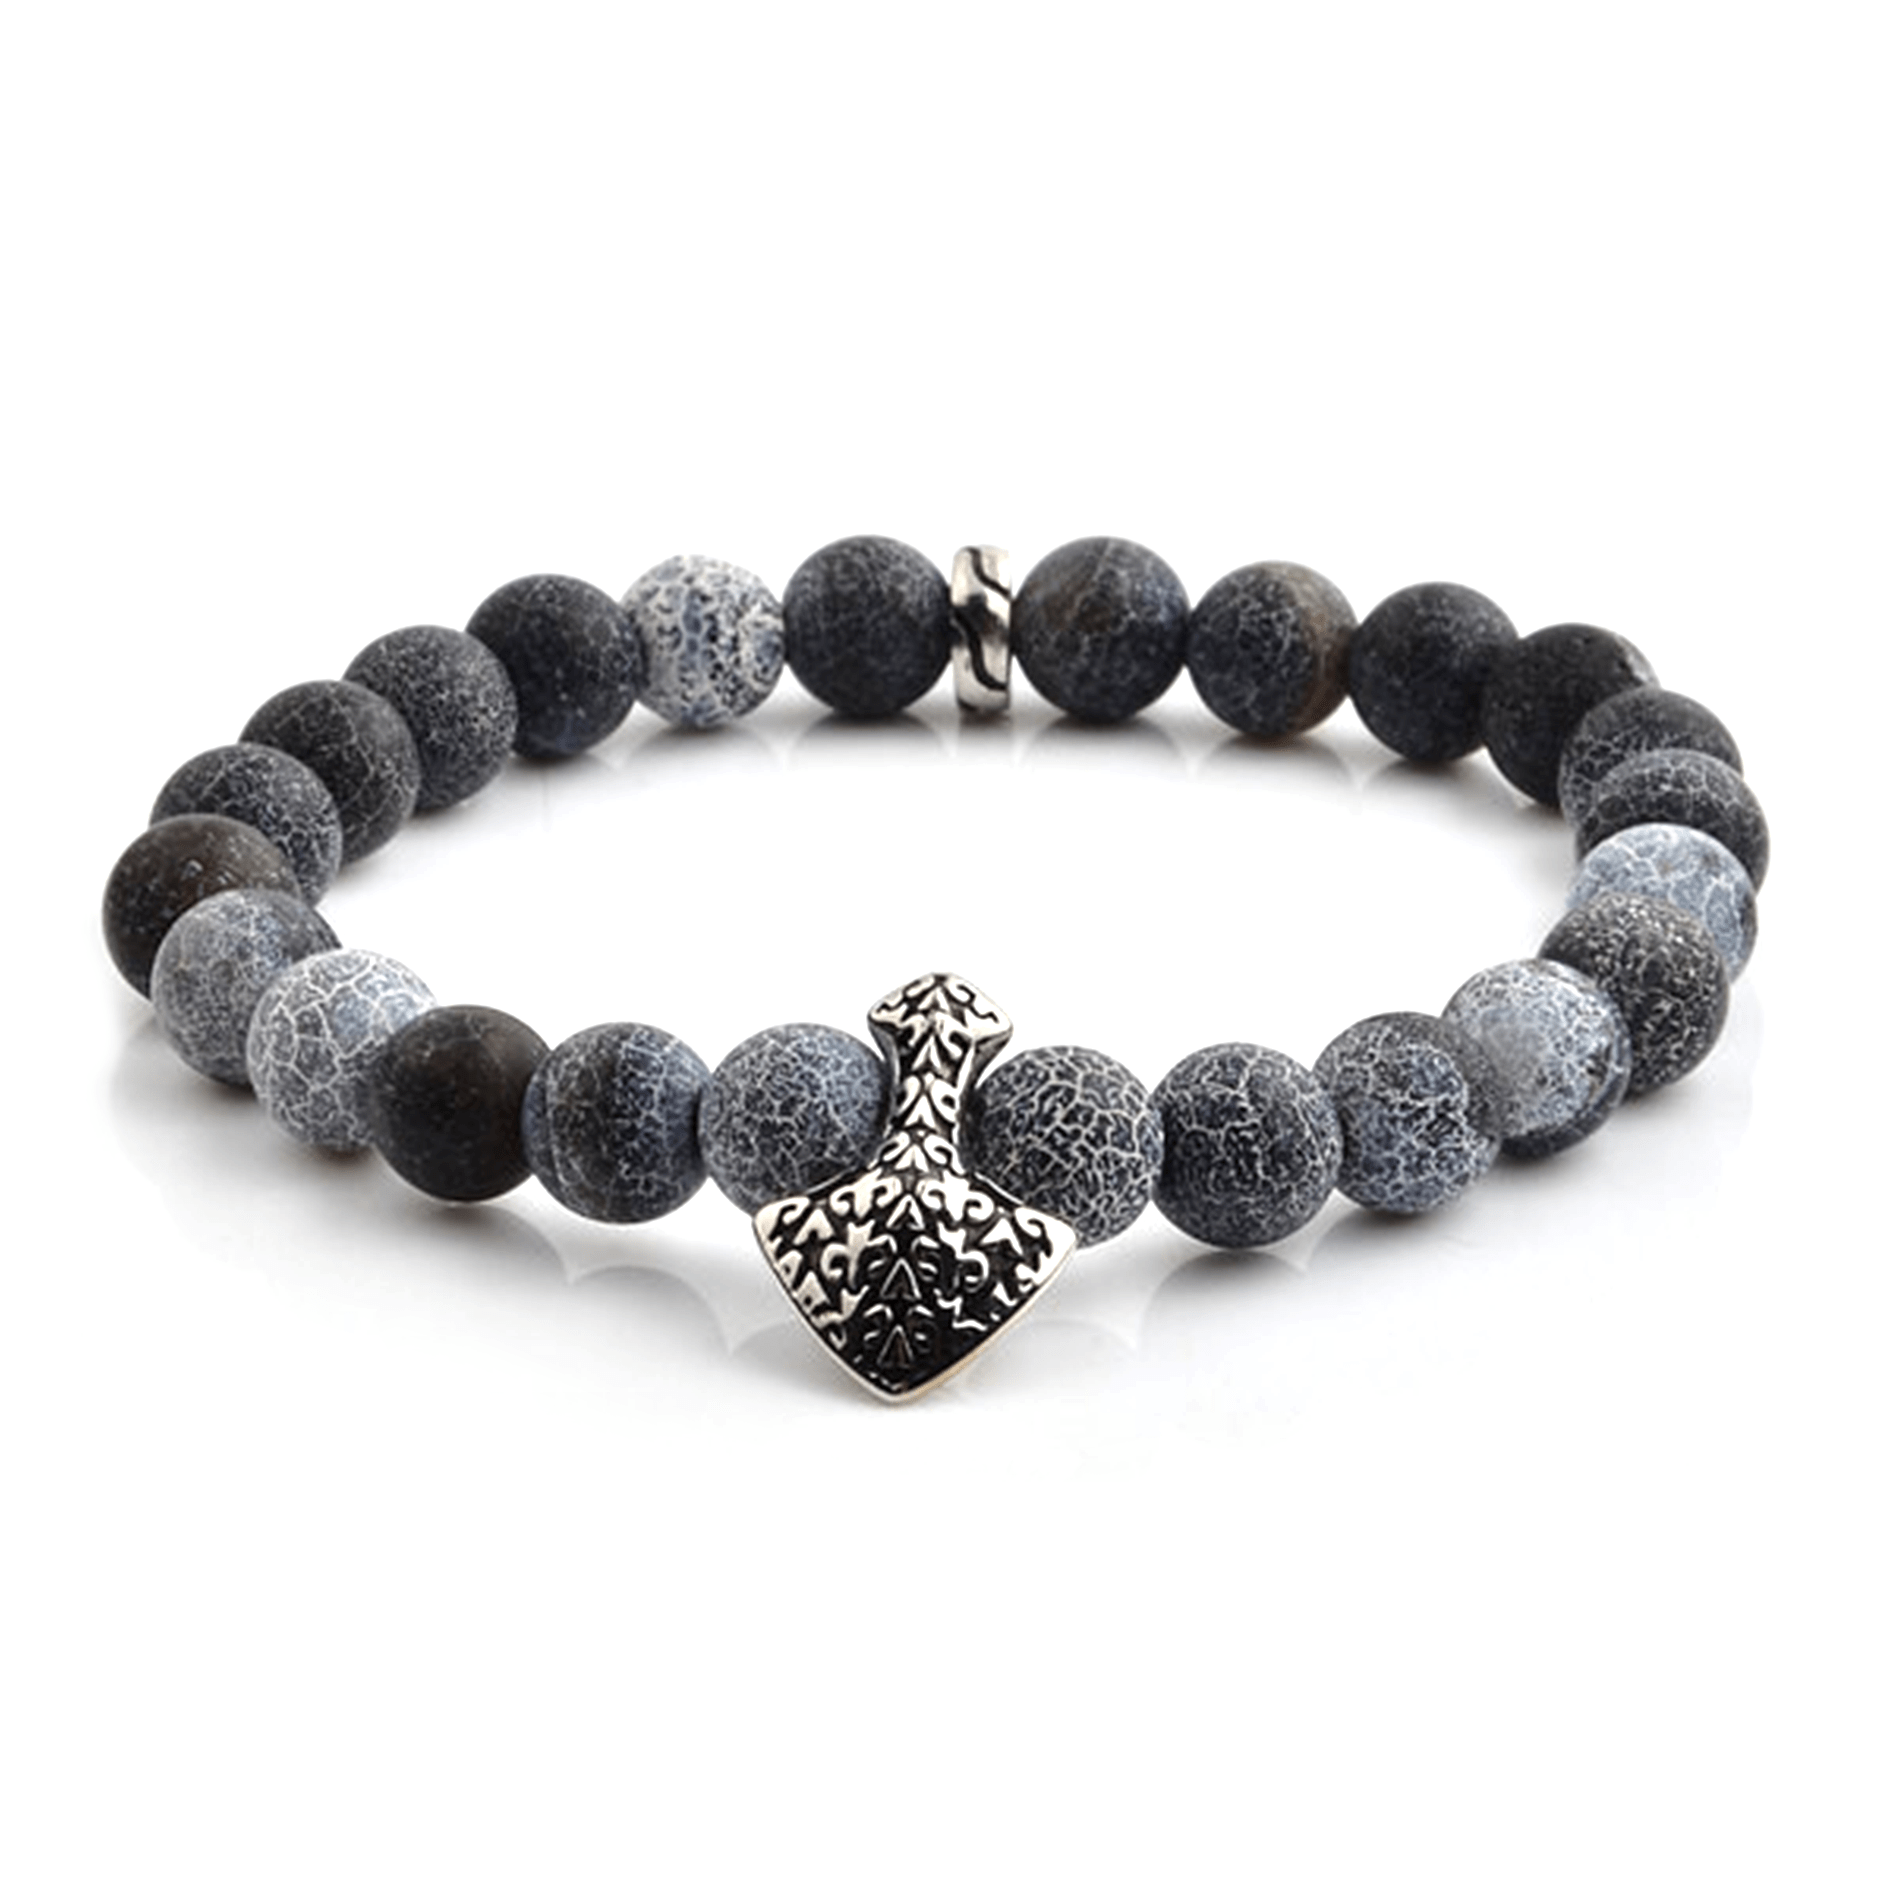 HYLIZO X Series 408 - Electric Blue/Black Shield Edition bracelet with 316 Stainless Steel Shield with fleur de lis engraving